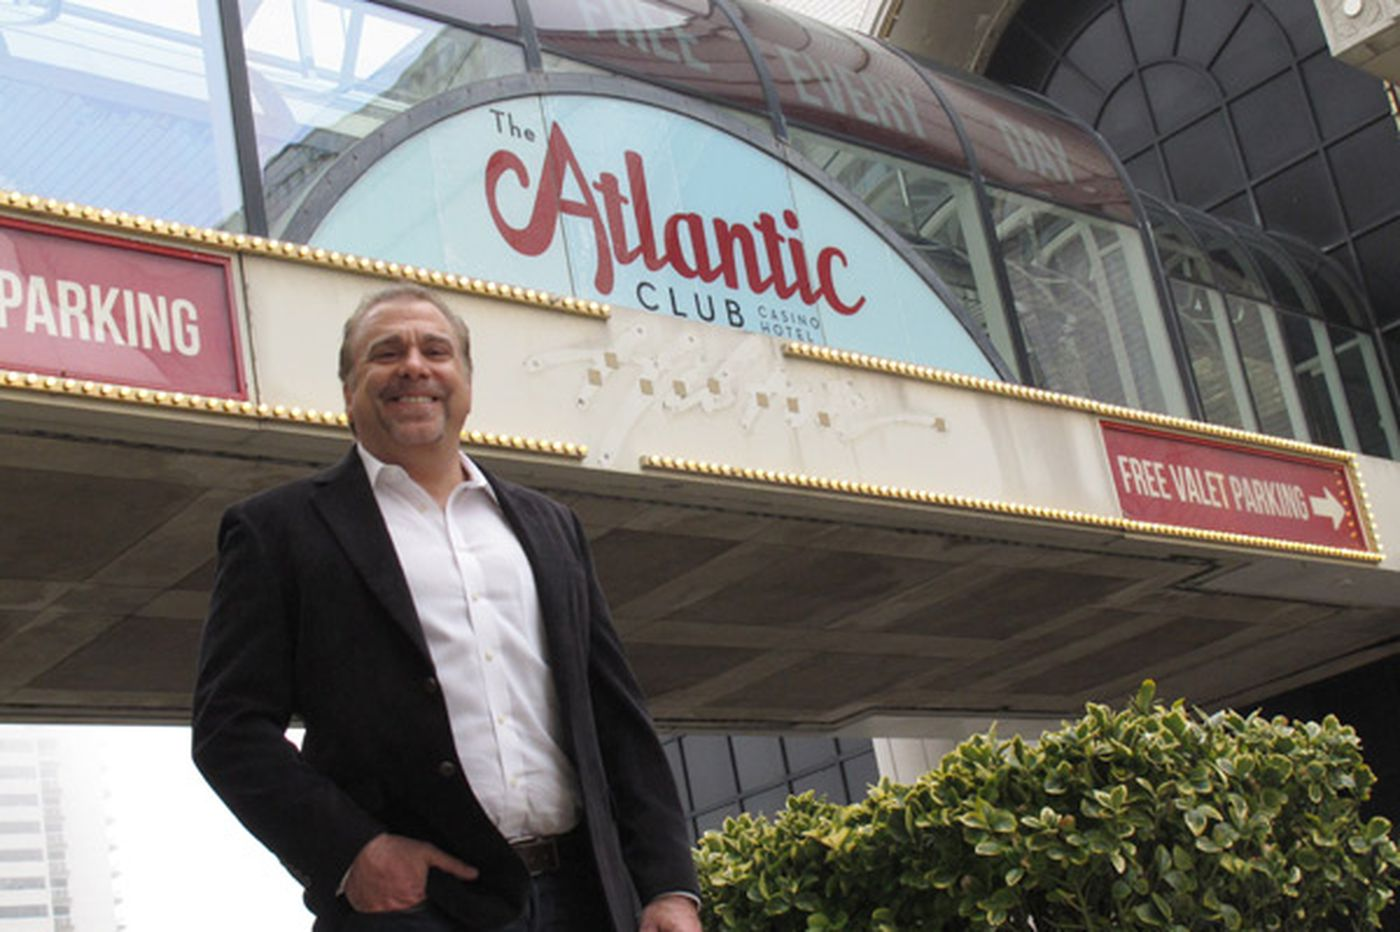 Possible payout reduced for execs of bankrupt casino